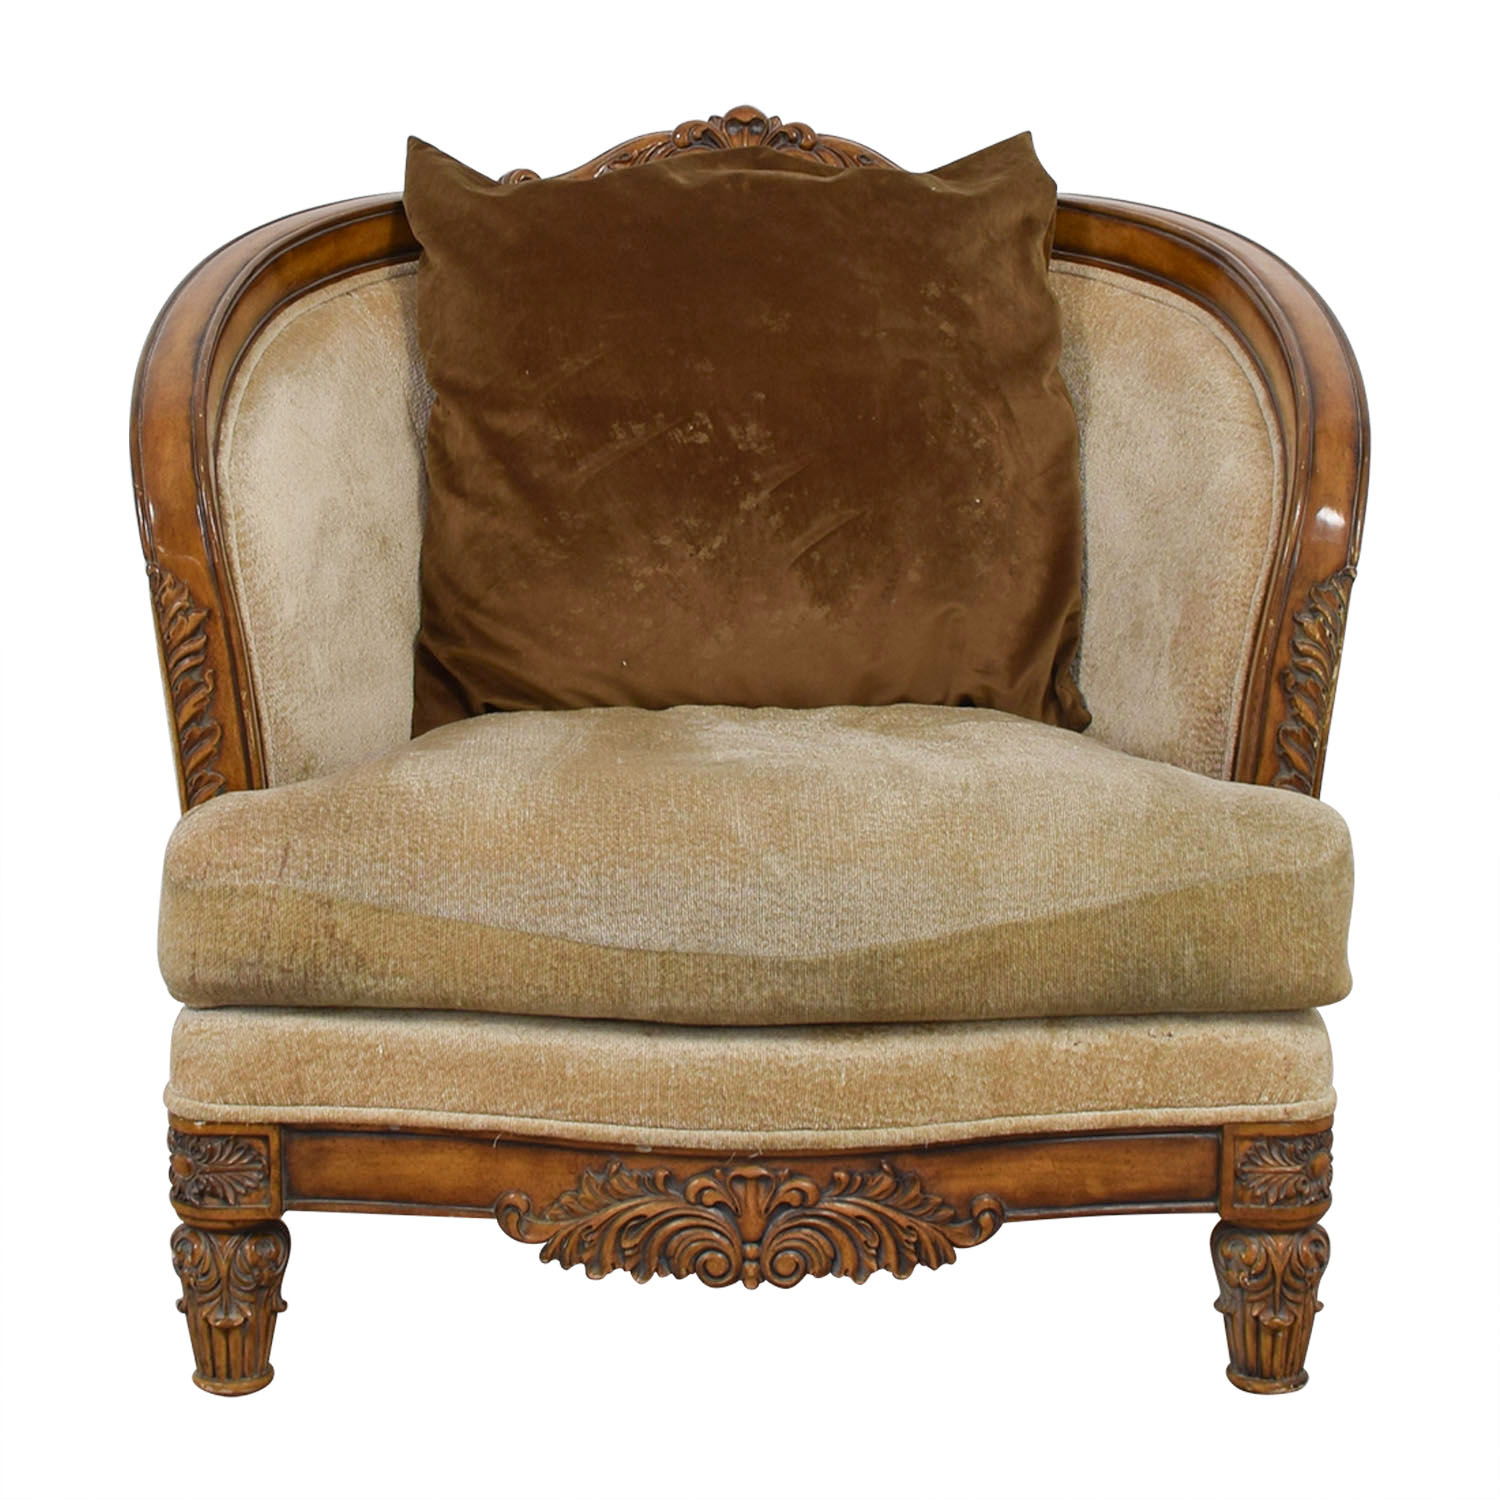 buy Beige Upholstered and Wood Accent Chair  Chairs